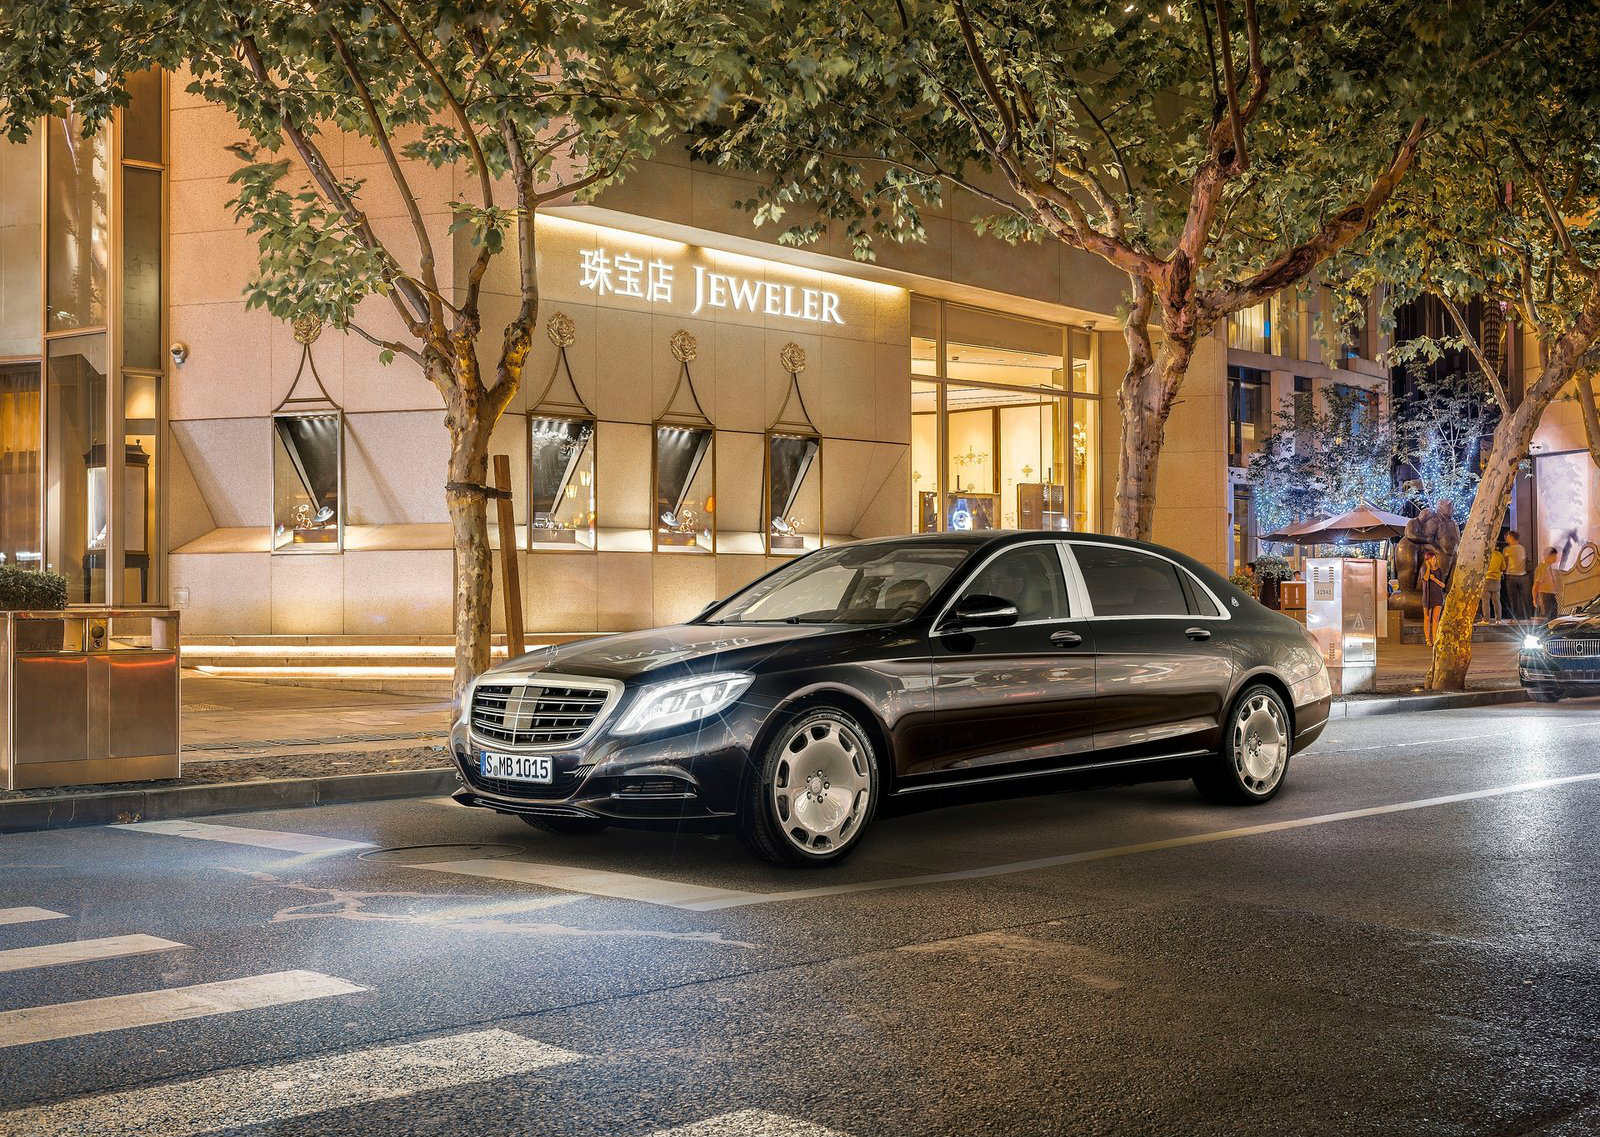 Mercedes-Maybach Releases New Images of S-Class